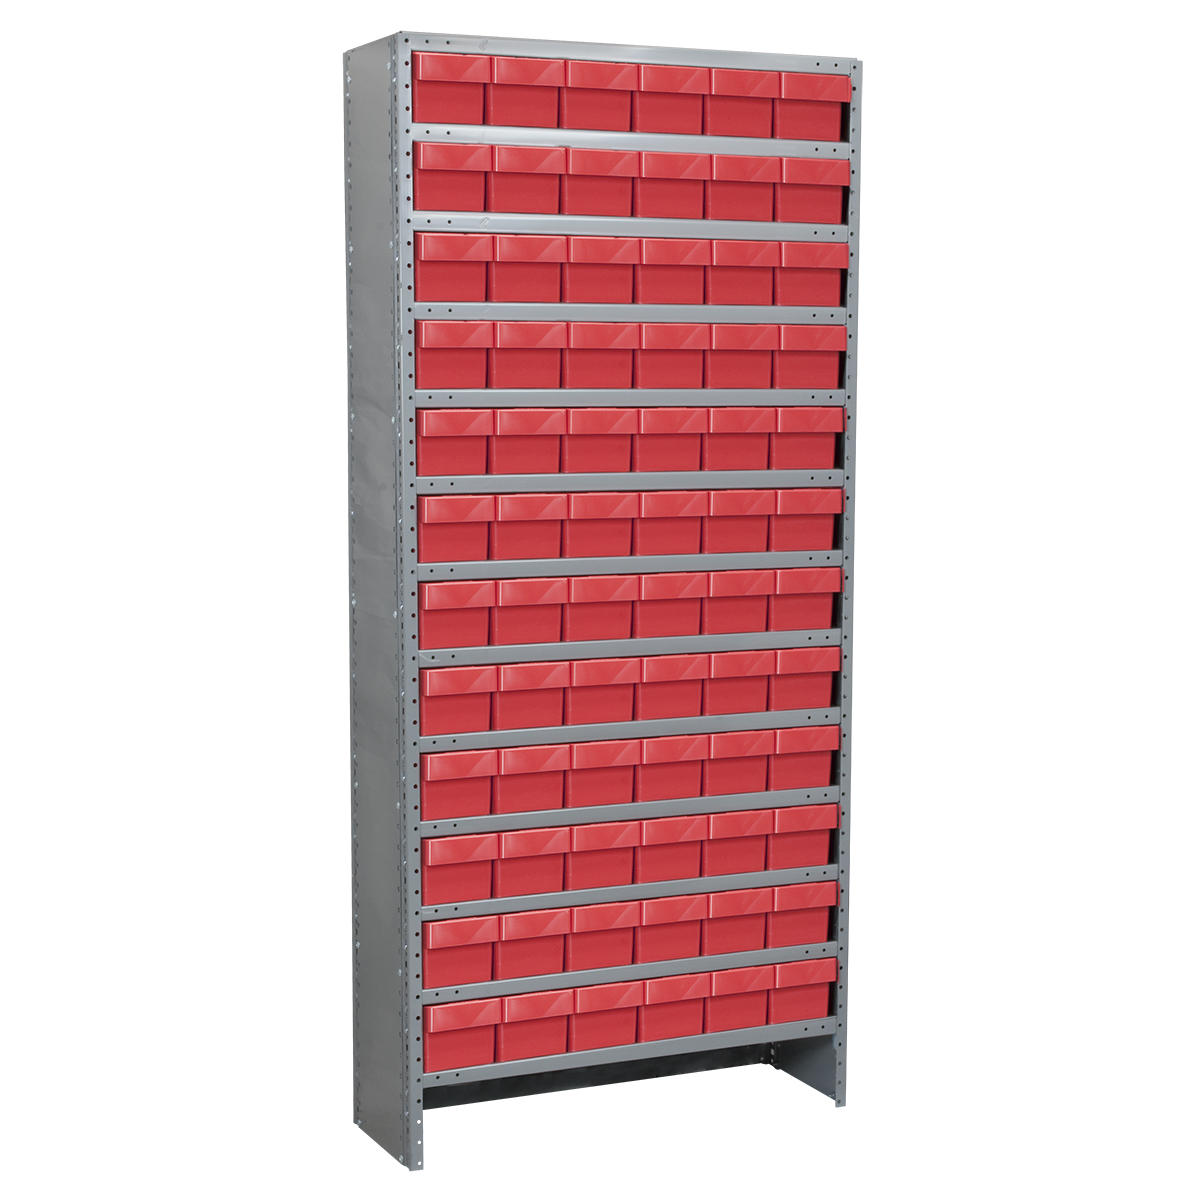 Enclosed Steel Shelving Kit, 12x36x79, 72 AkroDrawers, Gray/Red.  This item sold in carton quantities of 1.